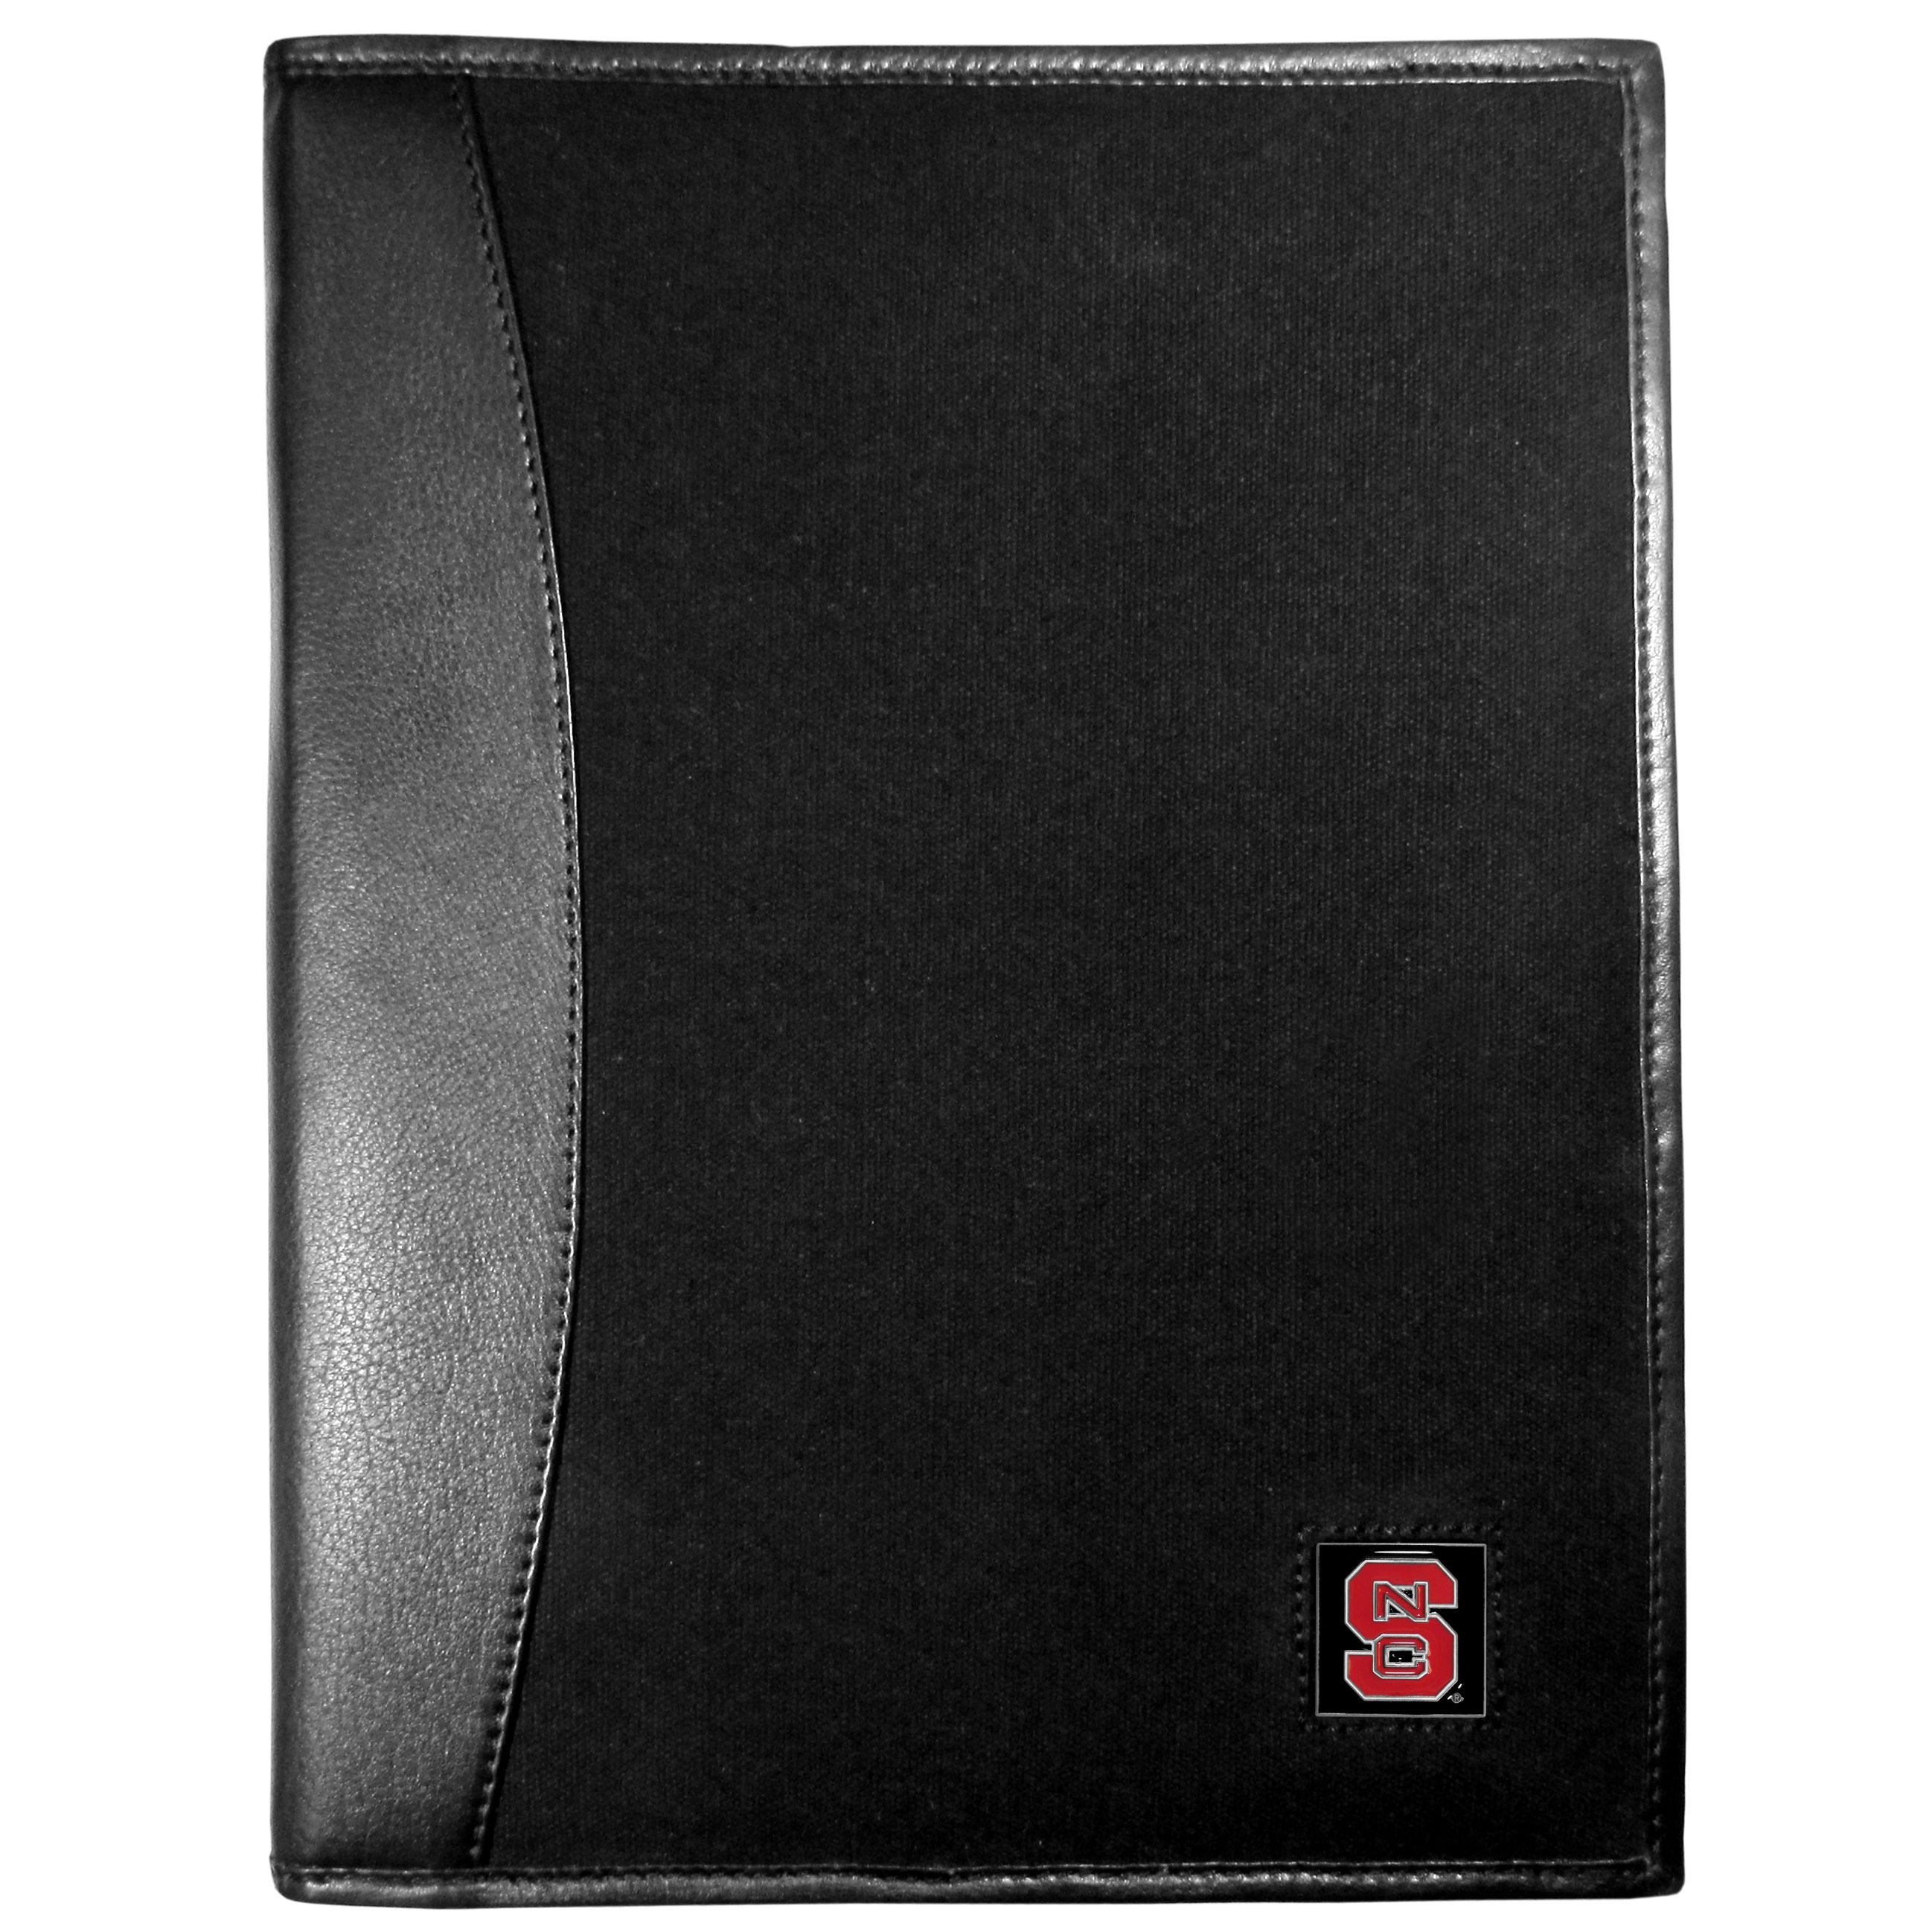 N. Carolina St. Wolfpack Leather and Canvas Padfolio - Our leather and canvas padfolio perfectly blends form and function. The attractive portfolio is bound in fine grain leather with an attractive canvas finish and the interior is a soft nylon. This high quality business accessory also features a fully cast metal N. Carolina St. Wolfpack emblem that is subtly set in the corner of the organizer. It is packed with features like 6 card slots for badges, business cards, hotel keys or credit cards and ID with a large pocket for loose papers and a writing tablet slot making it a must-have for the professional on the go.